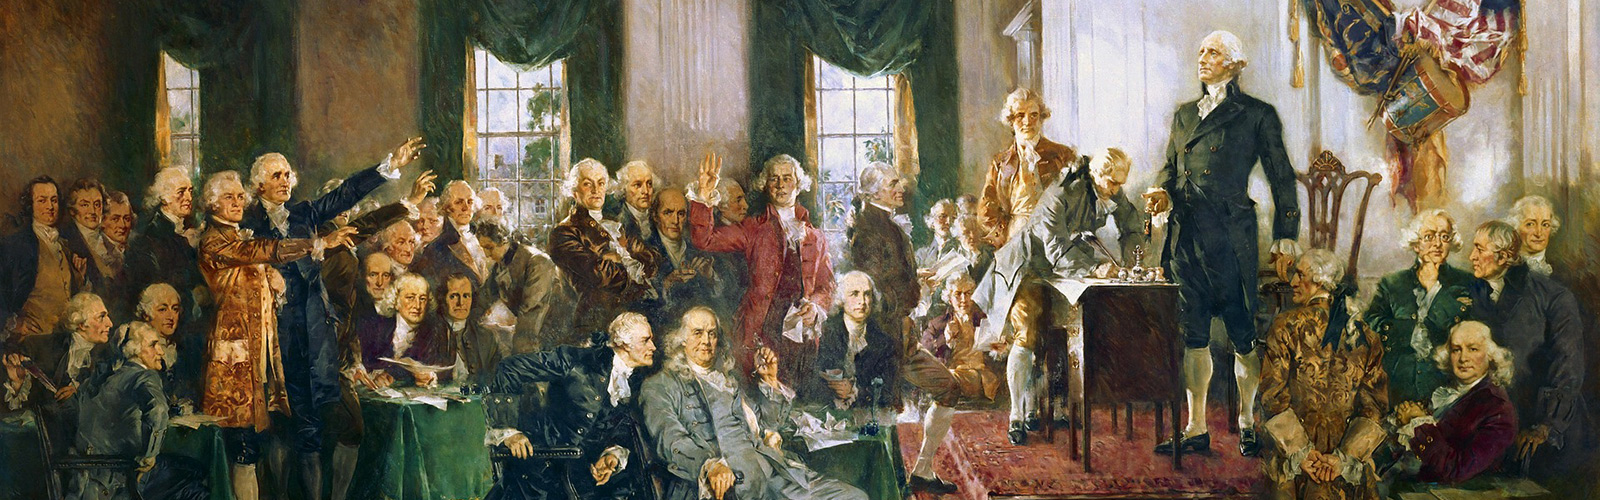 Painting by Gerd Altmann of the signing of the US Constitution.